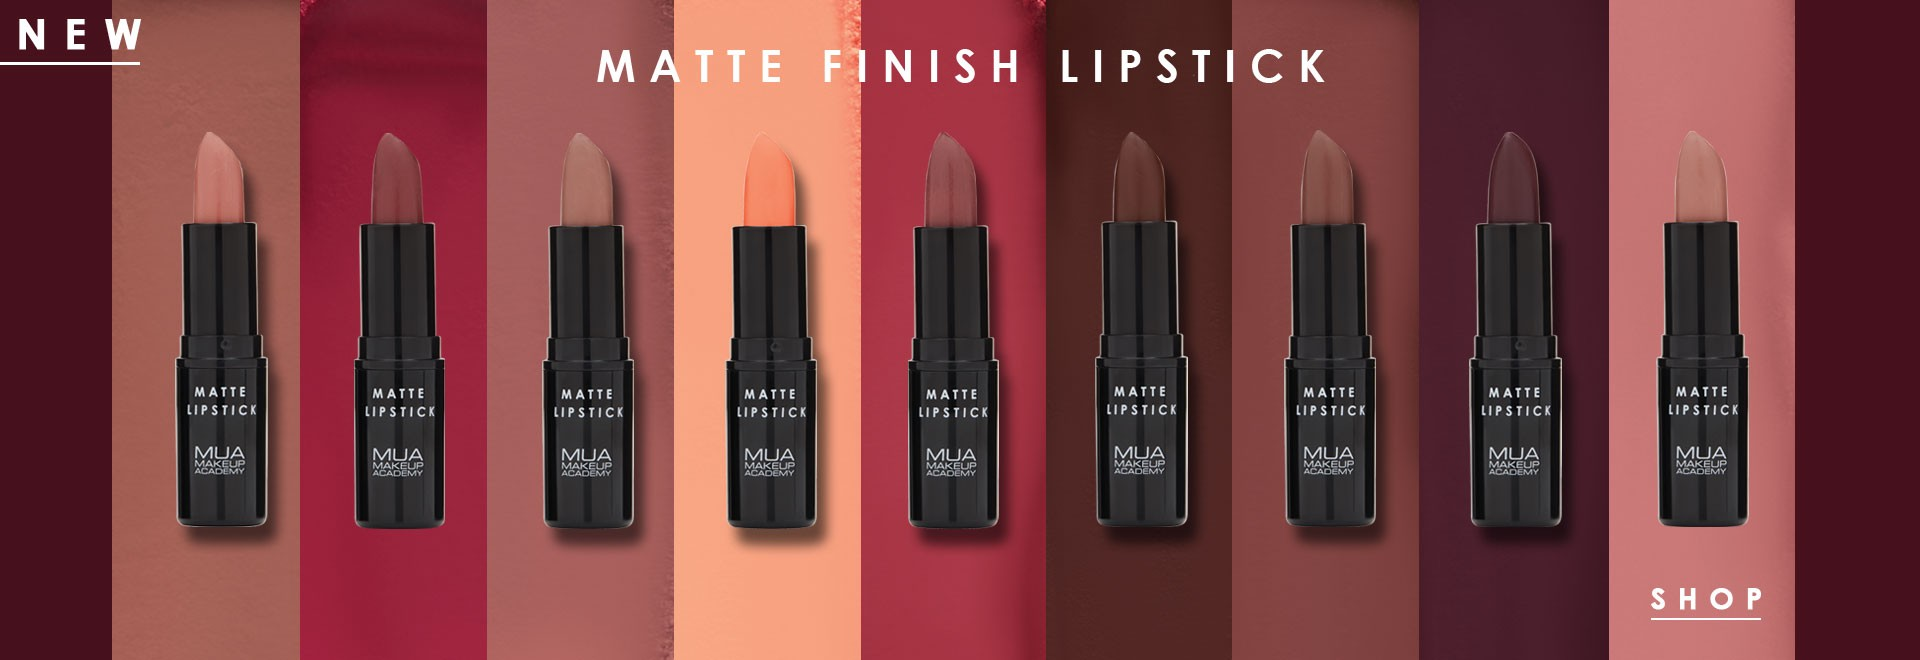 MUA MATTE FINISH LIPSTICK